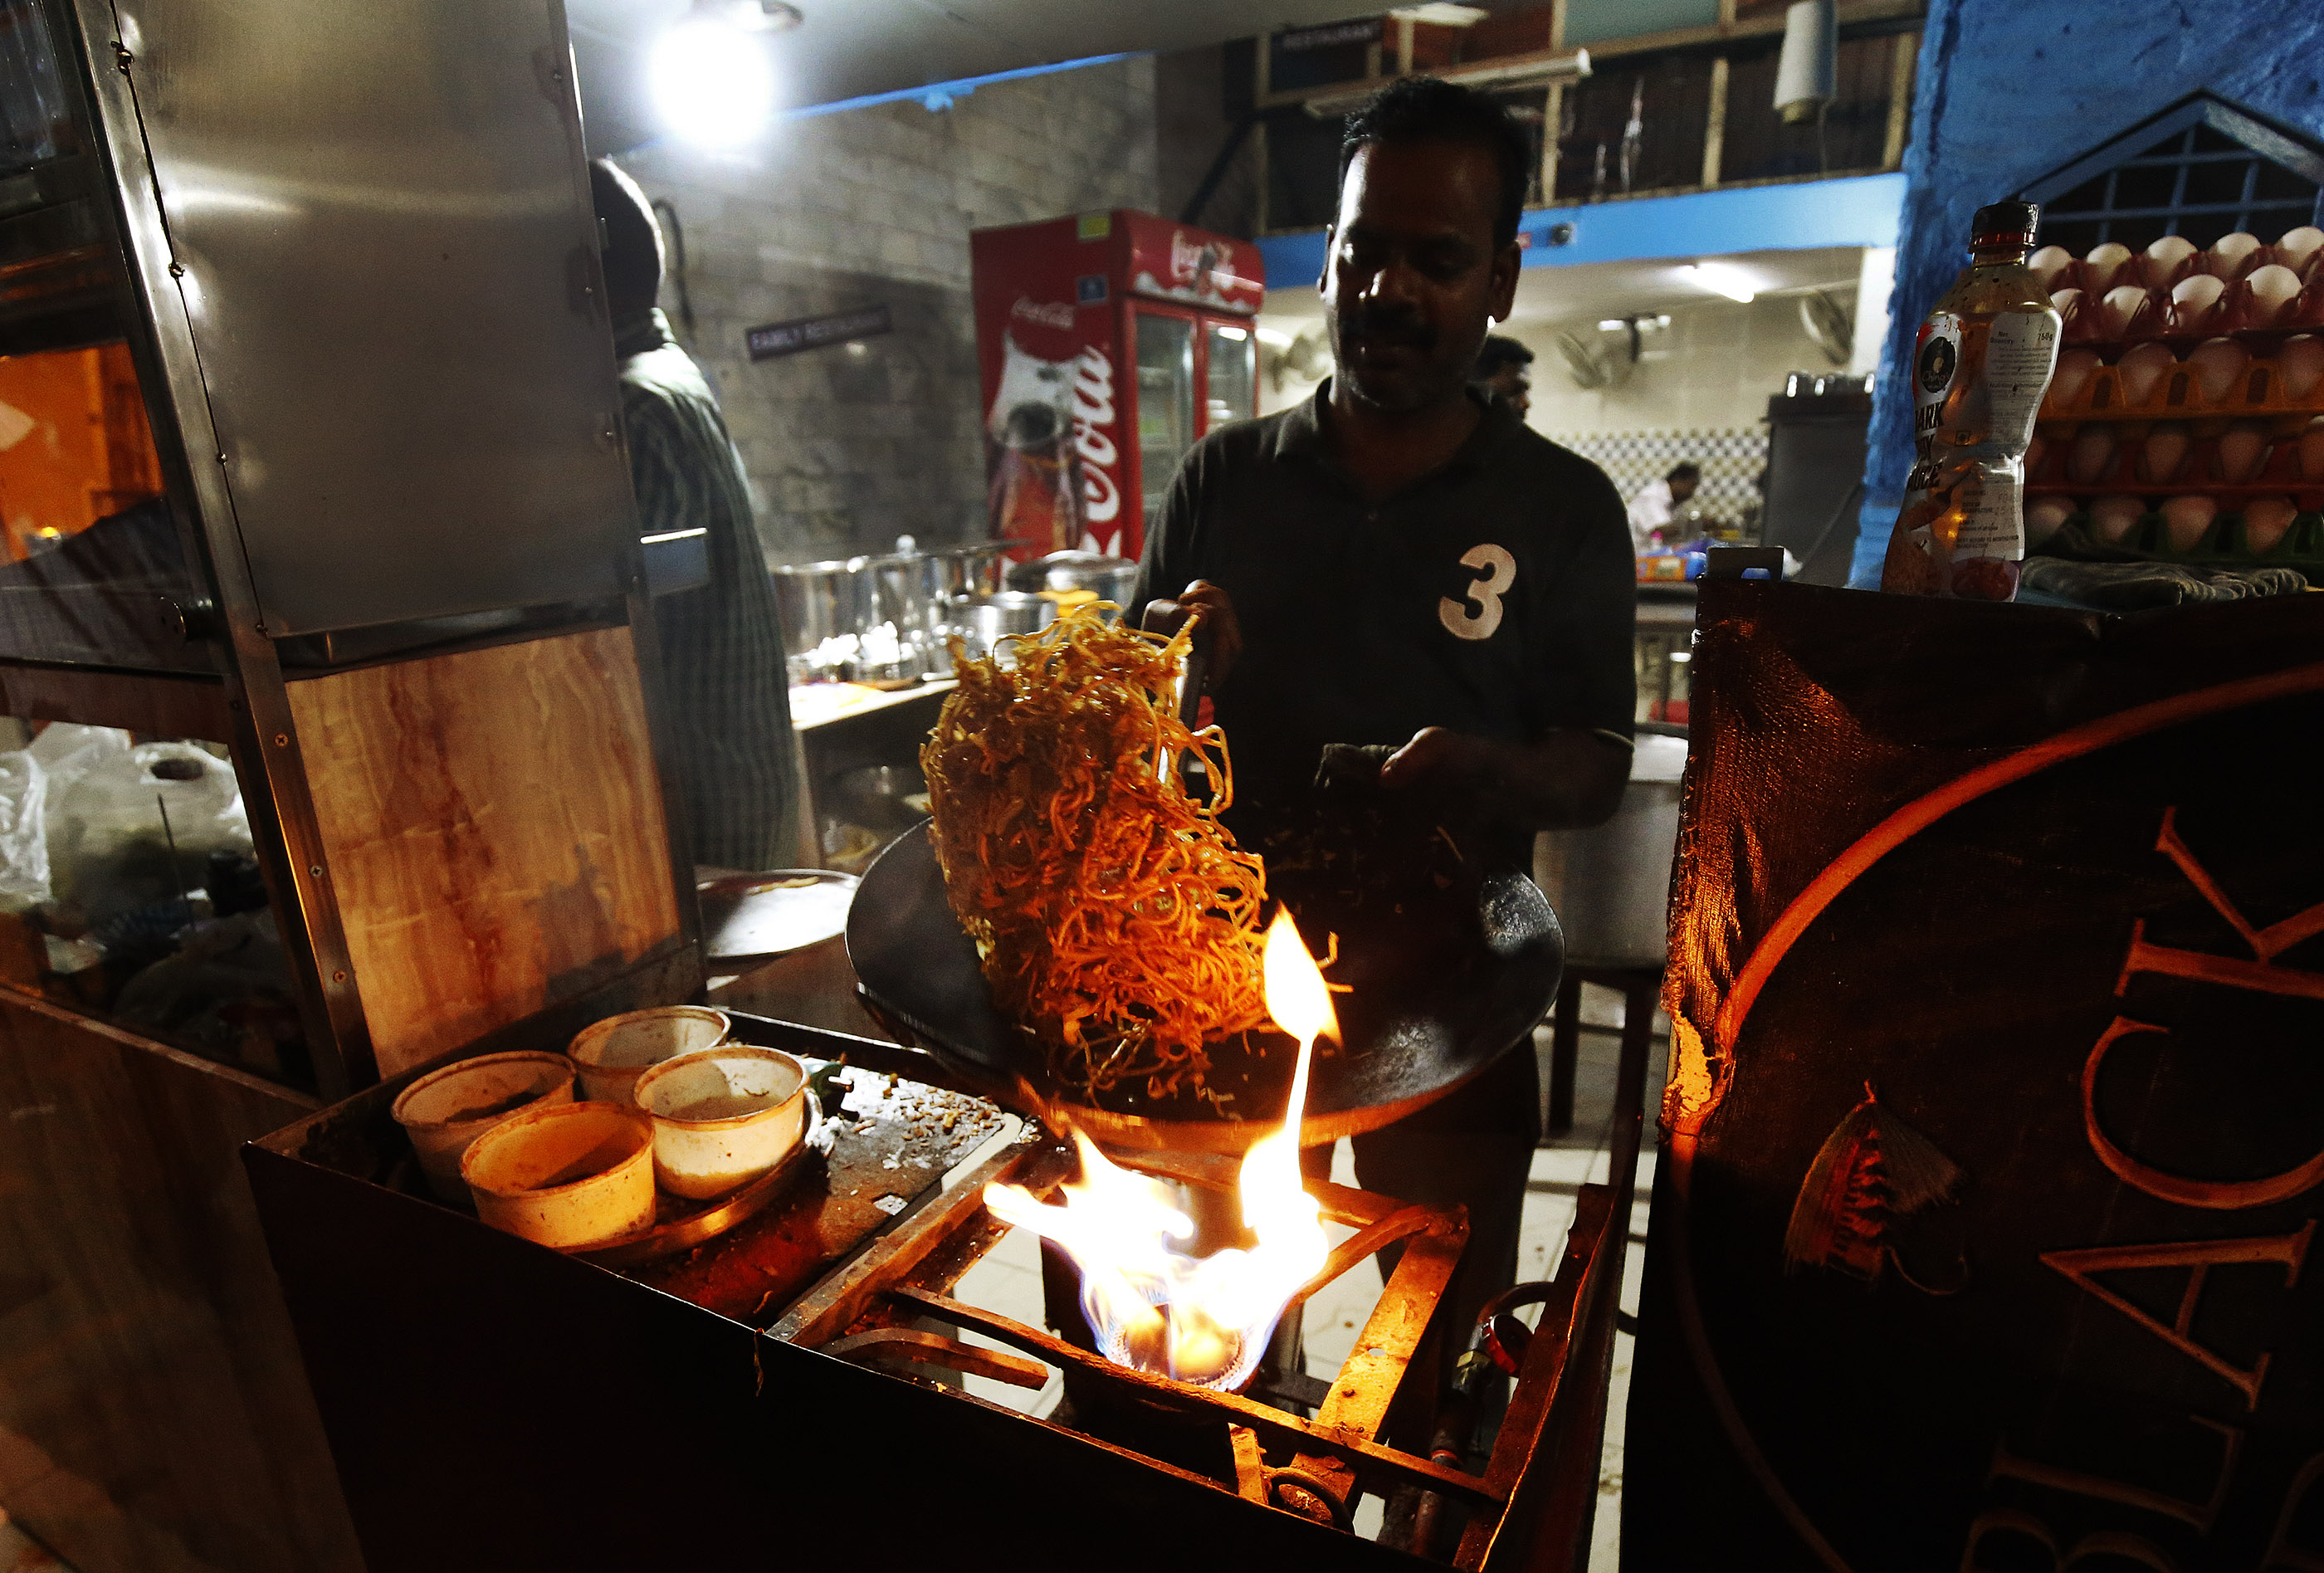 A street vendor cooks in Bengaluru, India, on Thursday, April 19, 2018.